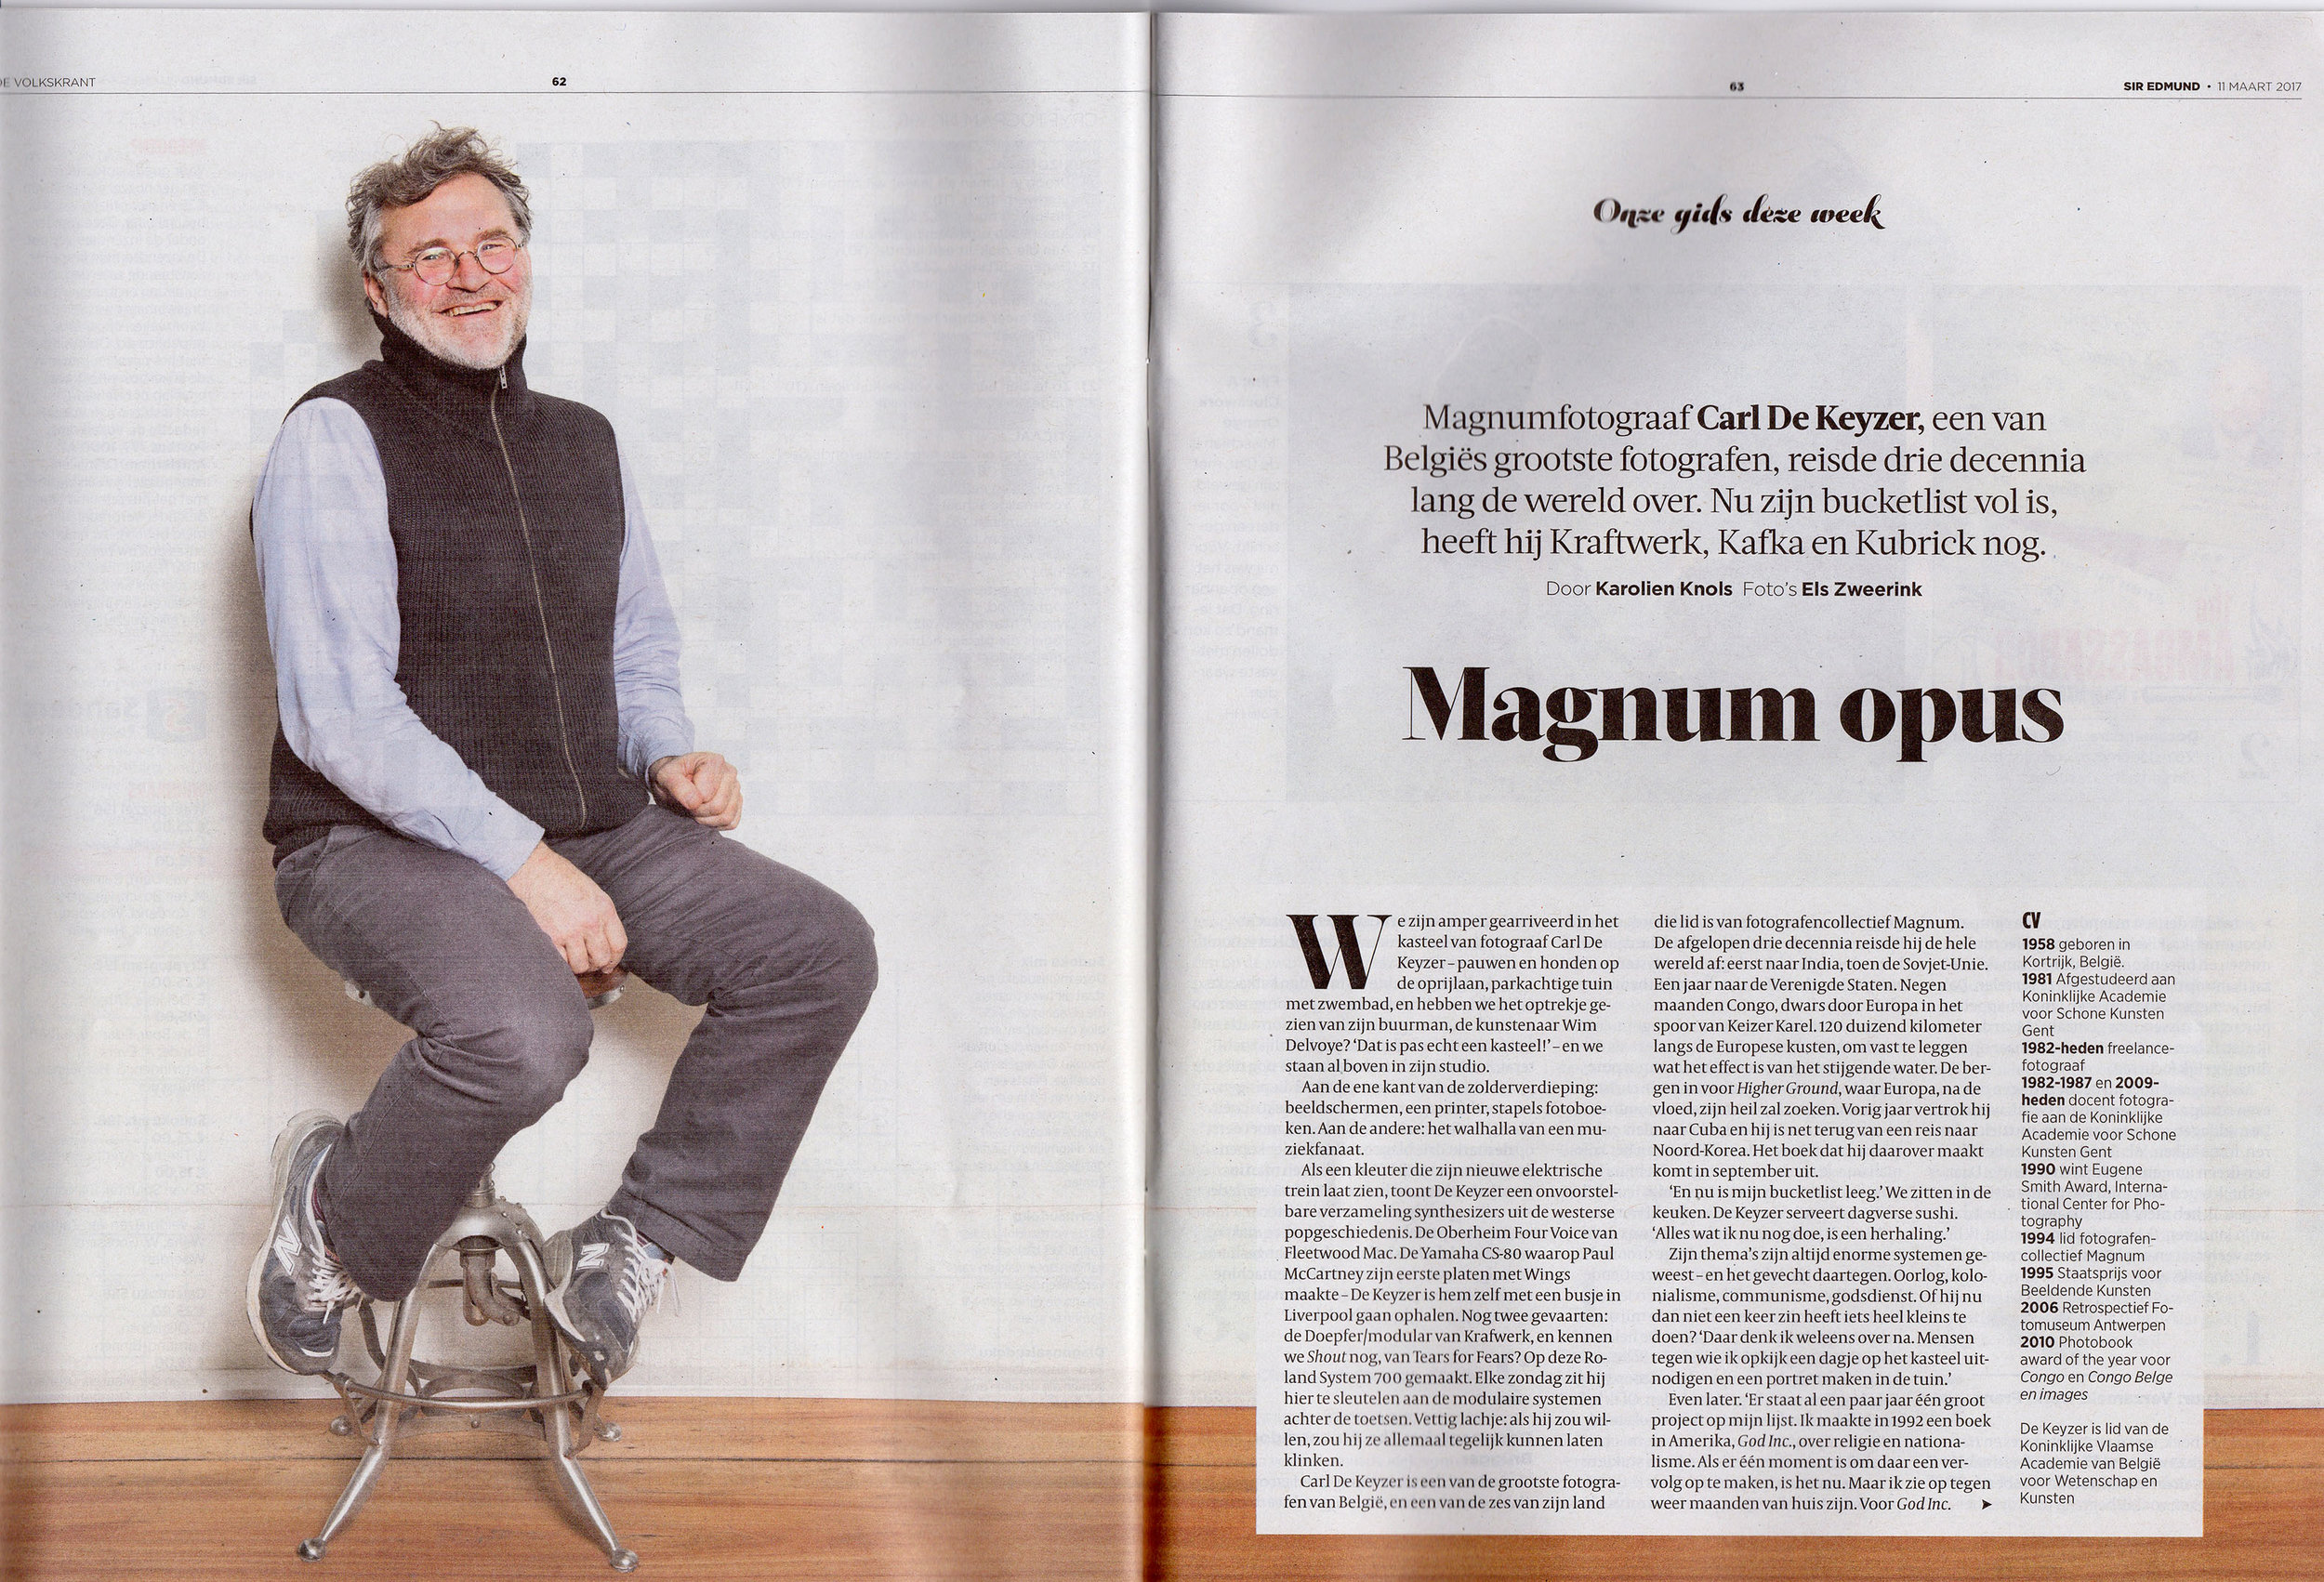 Sir Edmund De Volkskrant (Interview)